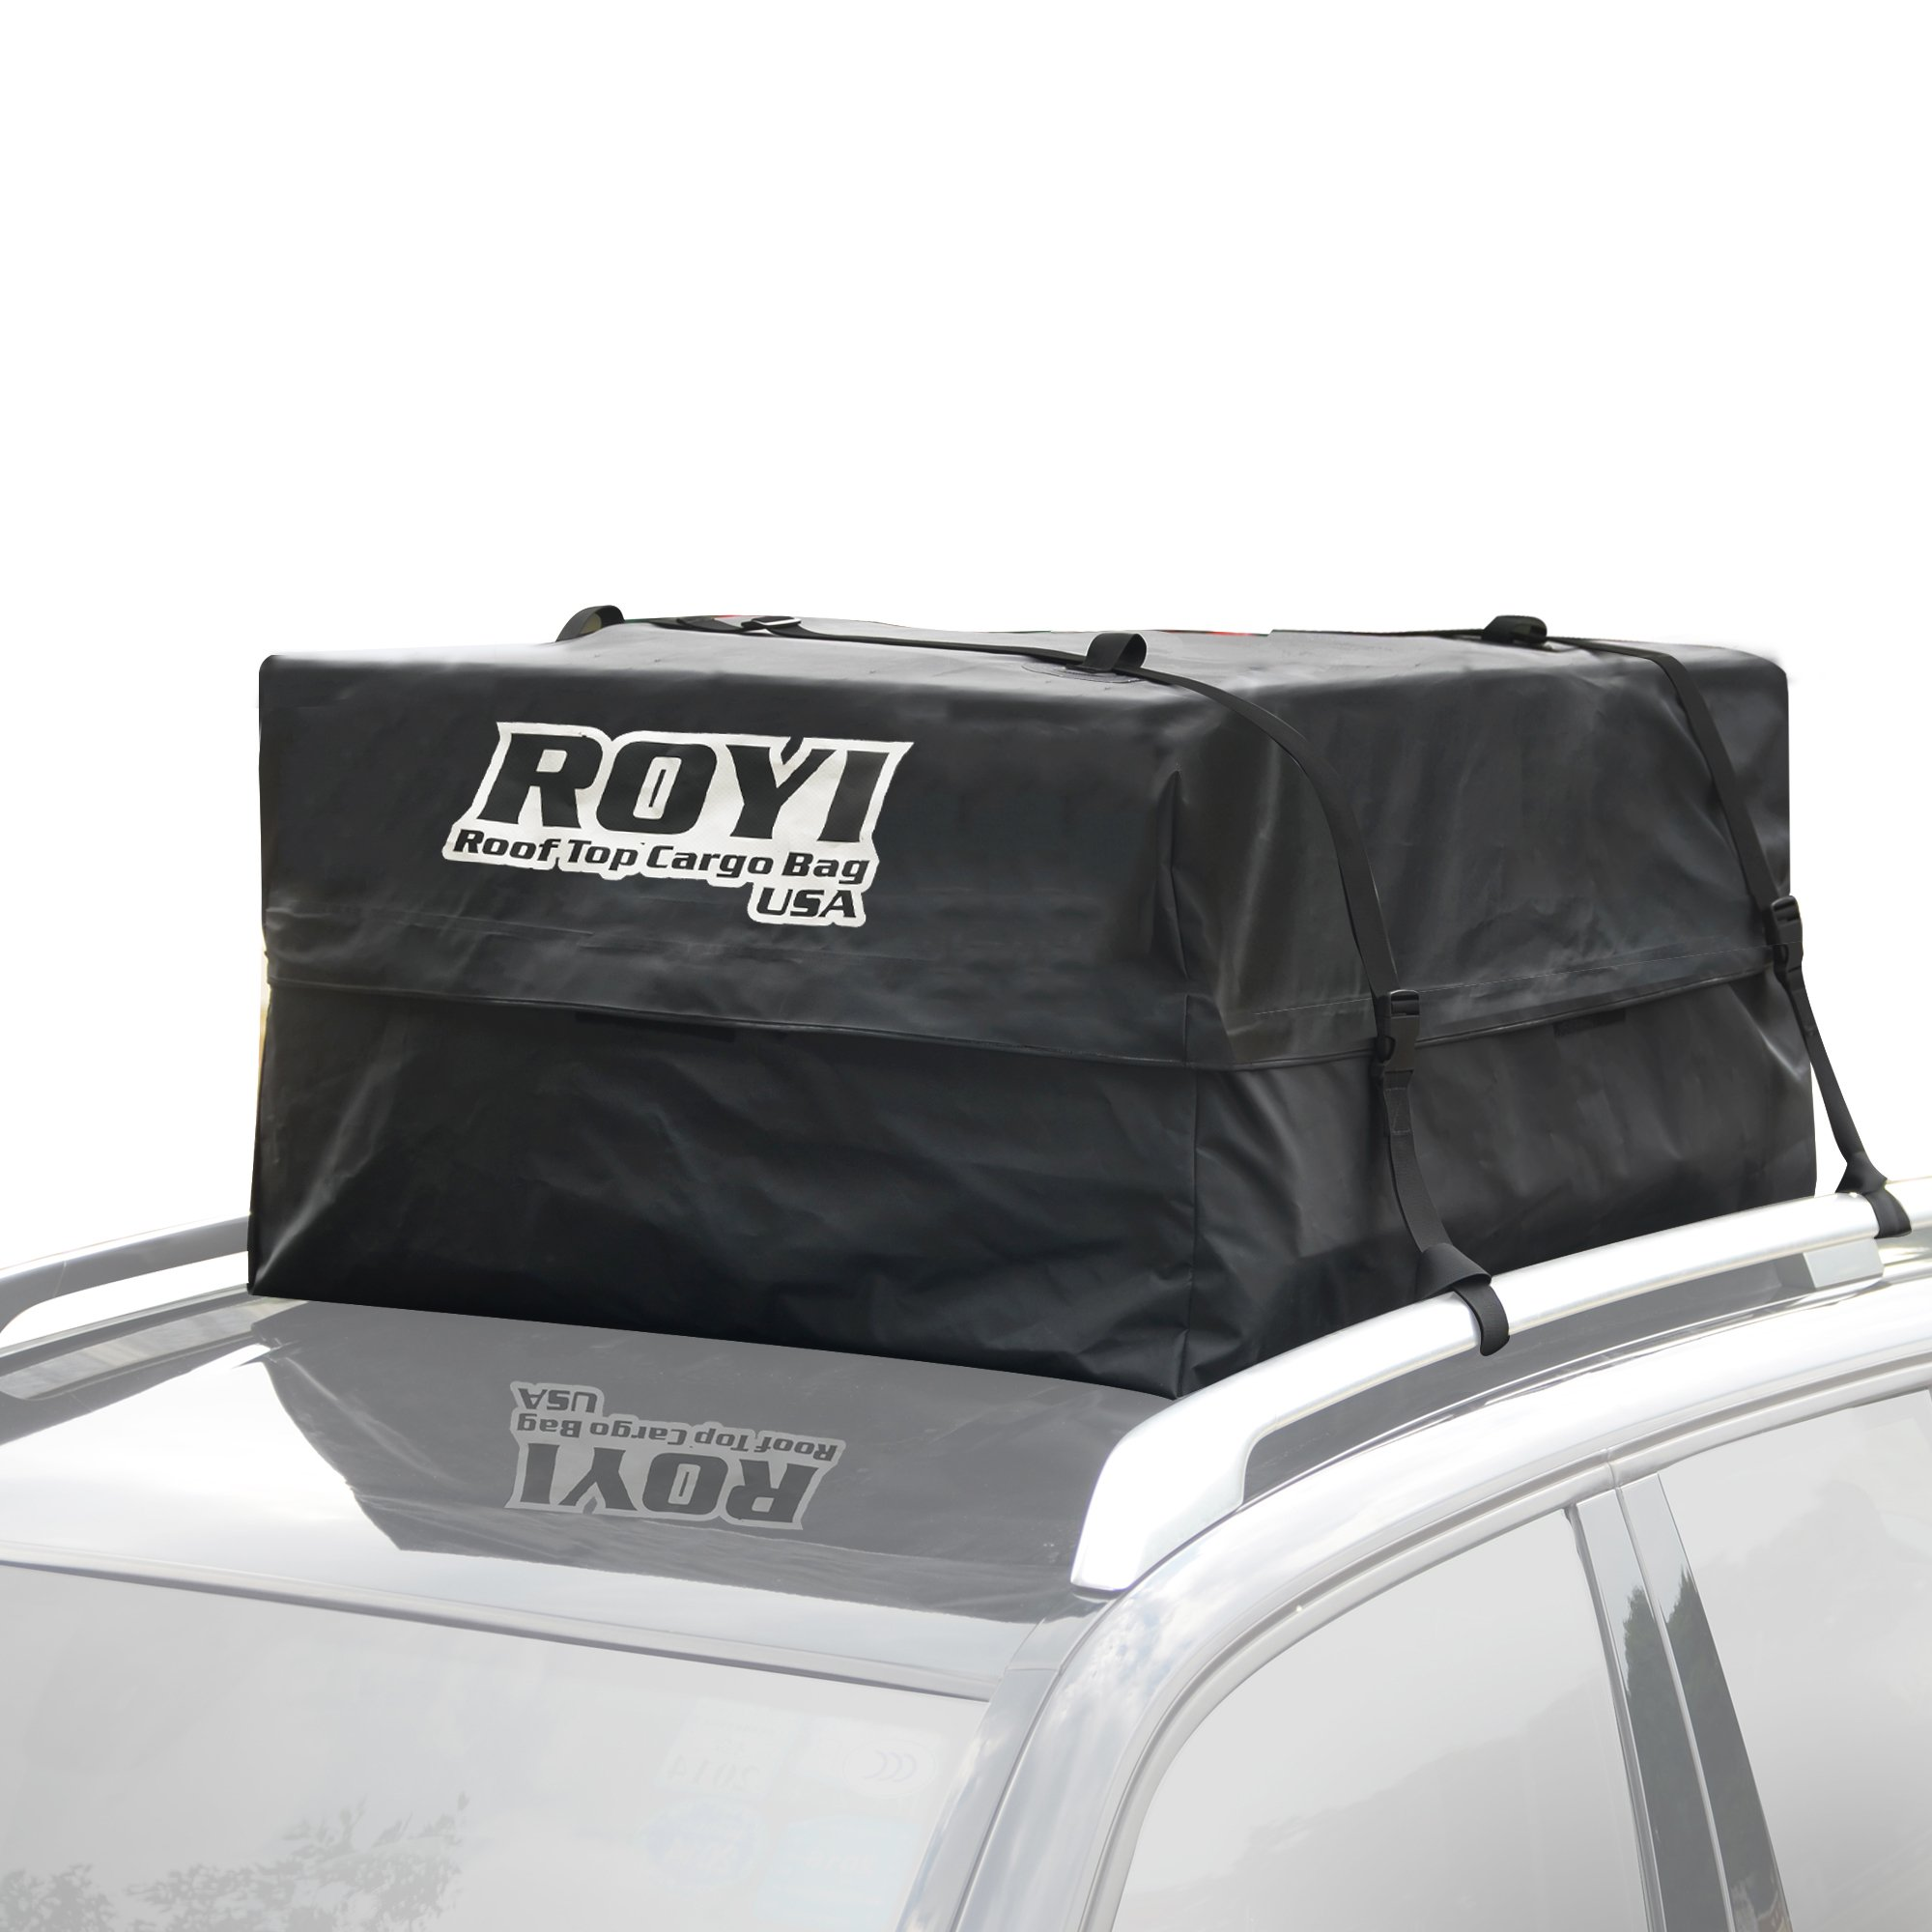 ROYI 100 % Waterproof Roof Cargo Bag Heavy-Duty Top Carrier Storage Box for Travel and Luggage Transportation | 3-Year Warranty | Fit for the Outdoor Elements(15 Cubic Feet) by ROYI